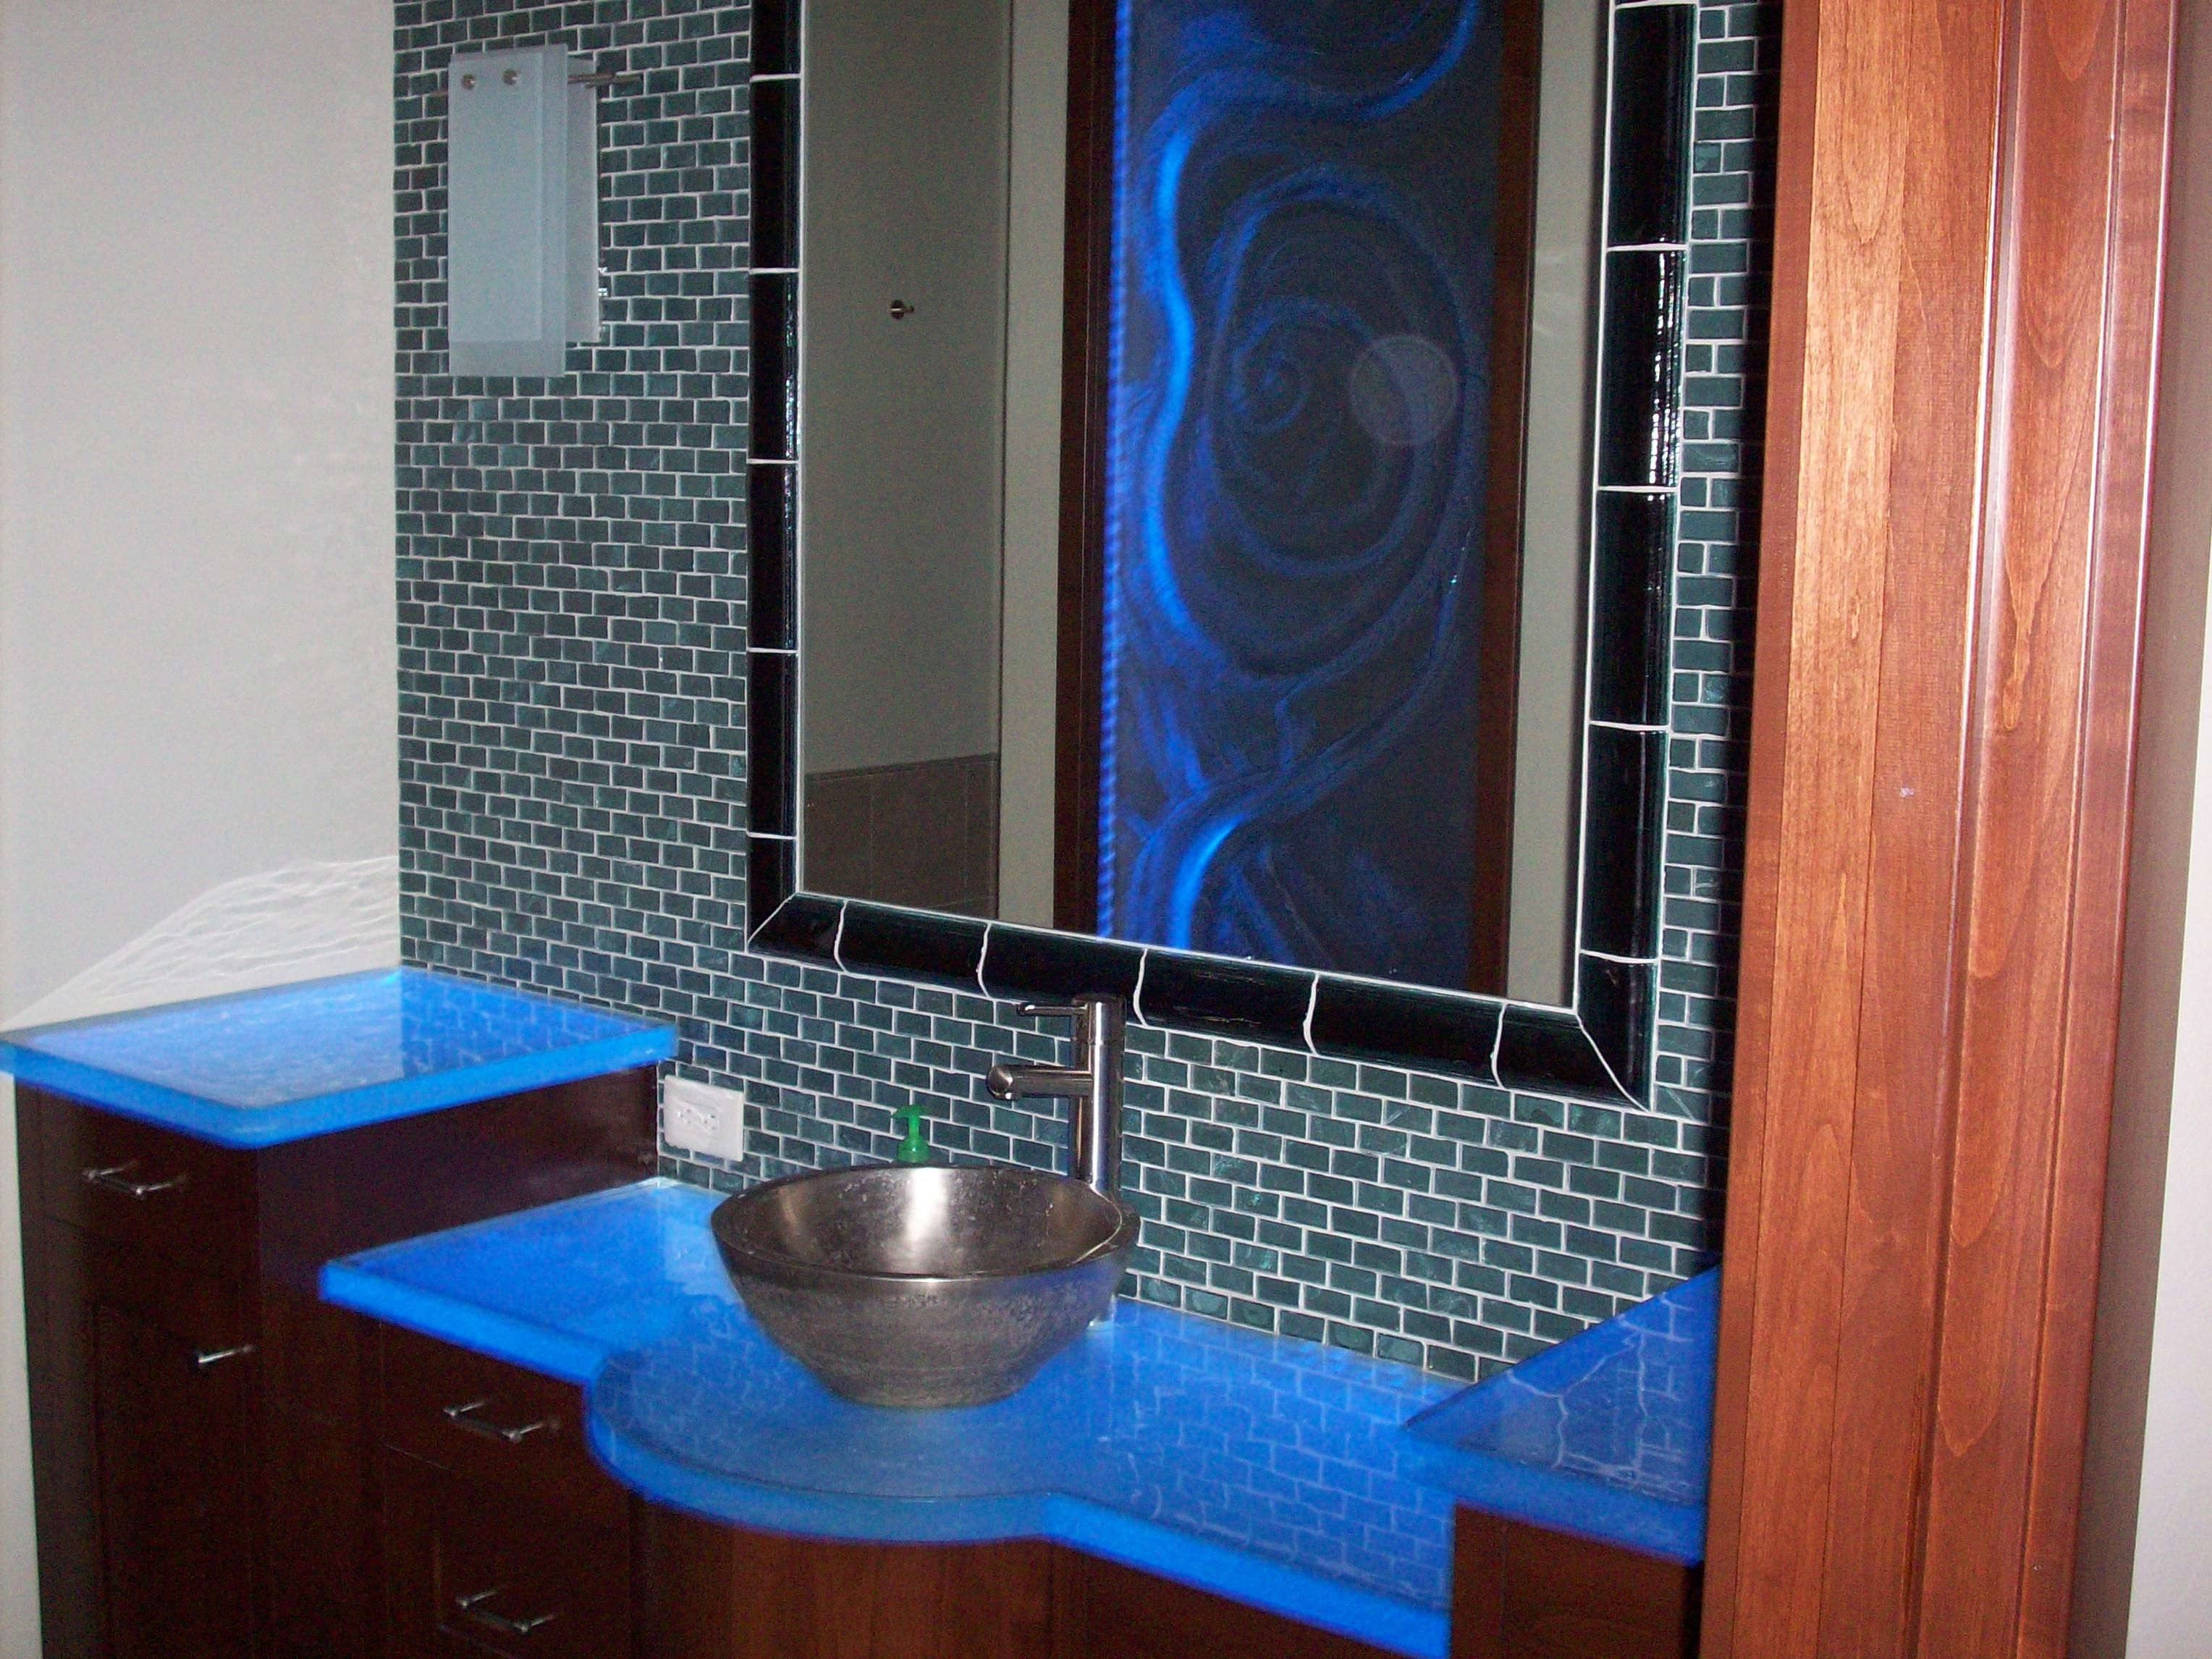 Change color of bathroom tile - Uplit Thinkglass Countertops That Change Color With Embedded Led Light System Glass Window Reflected